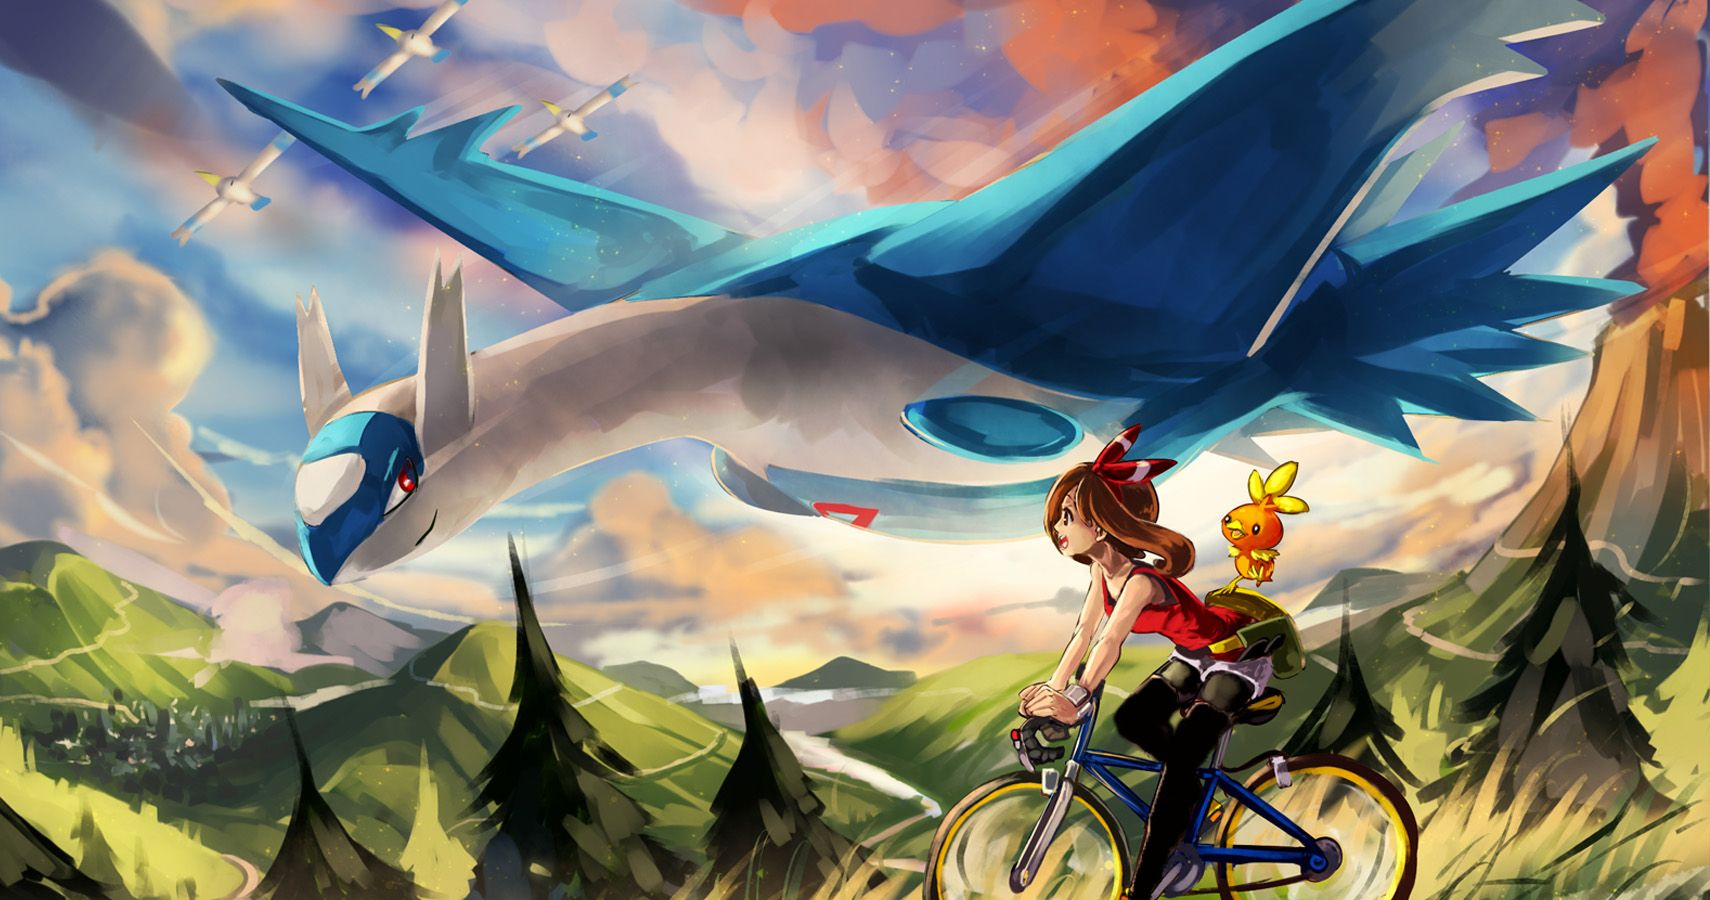 25 Hidden Details In Pokémon Ruby & Sapphire Real Fans Completely Missed